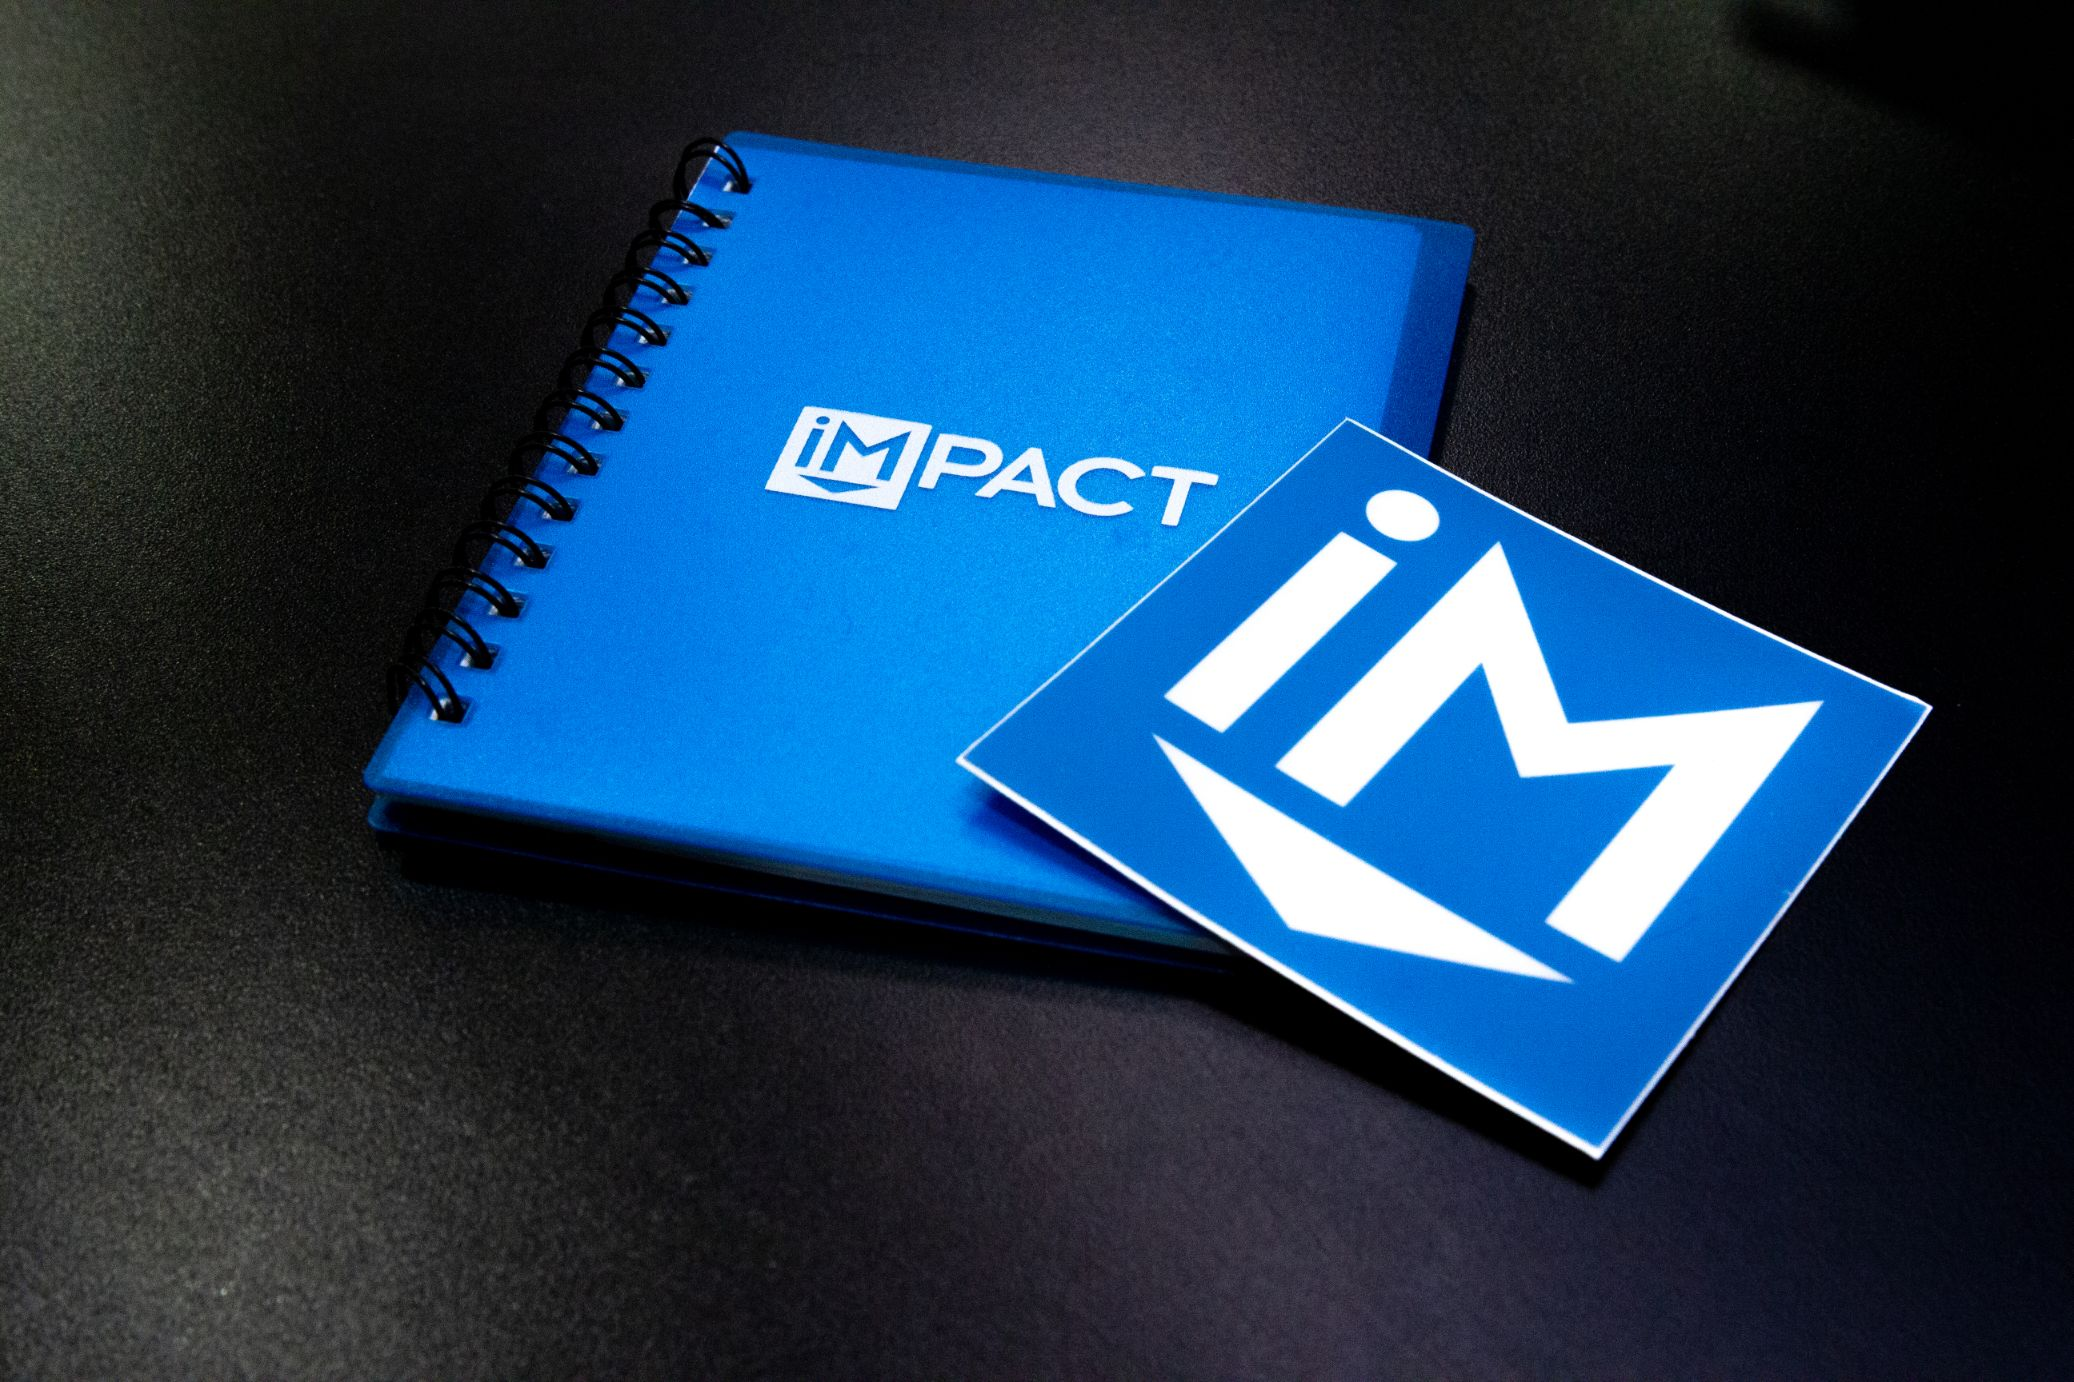 Who is not a fit for IMPACT's Digital Sales and Marketing Mastery program?